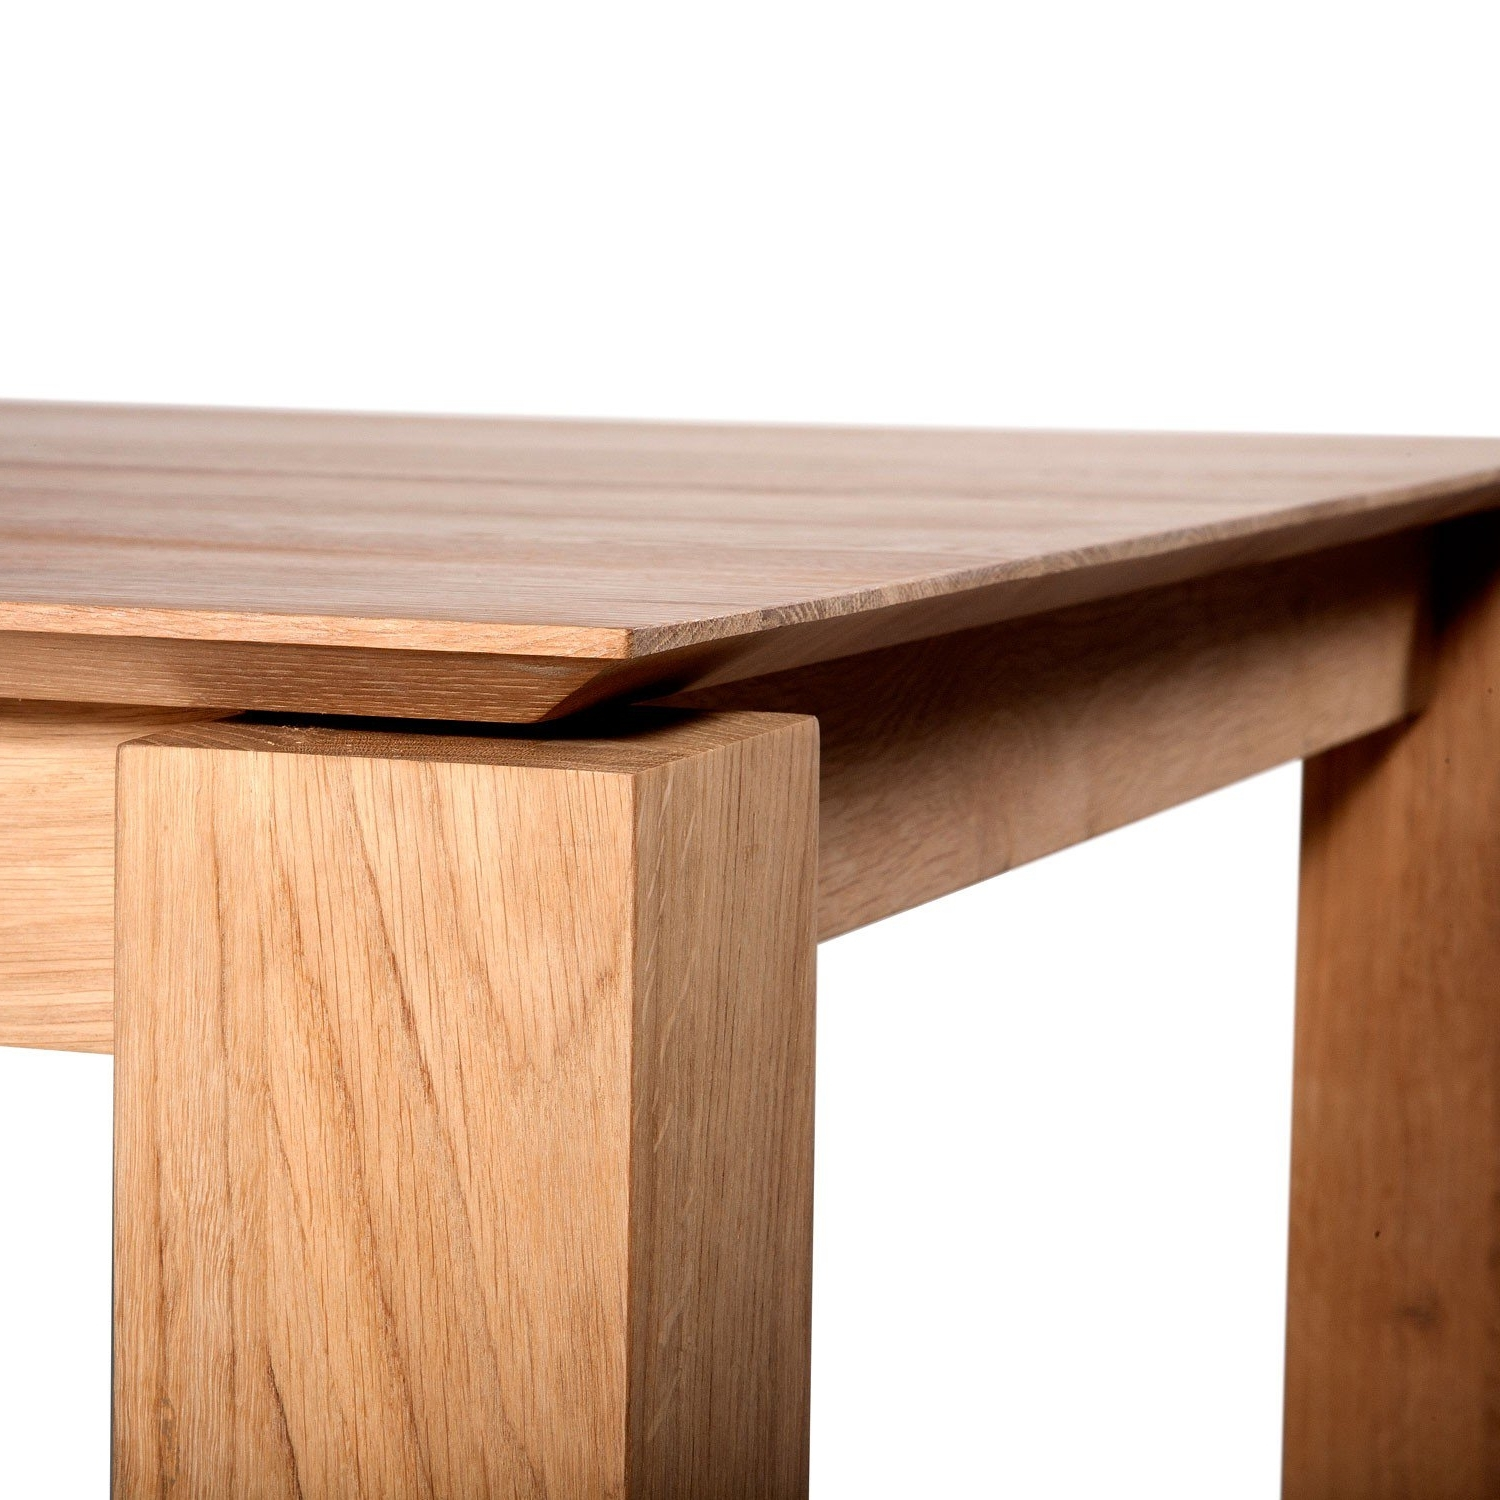 Ethnicraft Oak Slice Extending Dining Tables Intended For Most Up To Date Cheap Oak Dining Tables (Gallery 24 of 25)